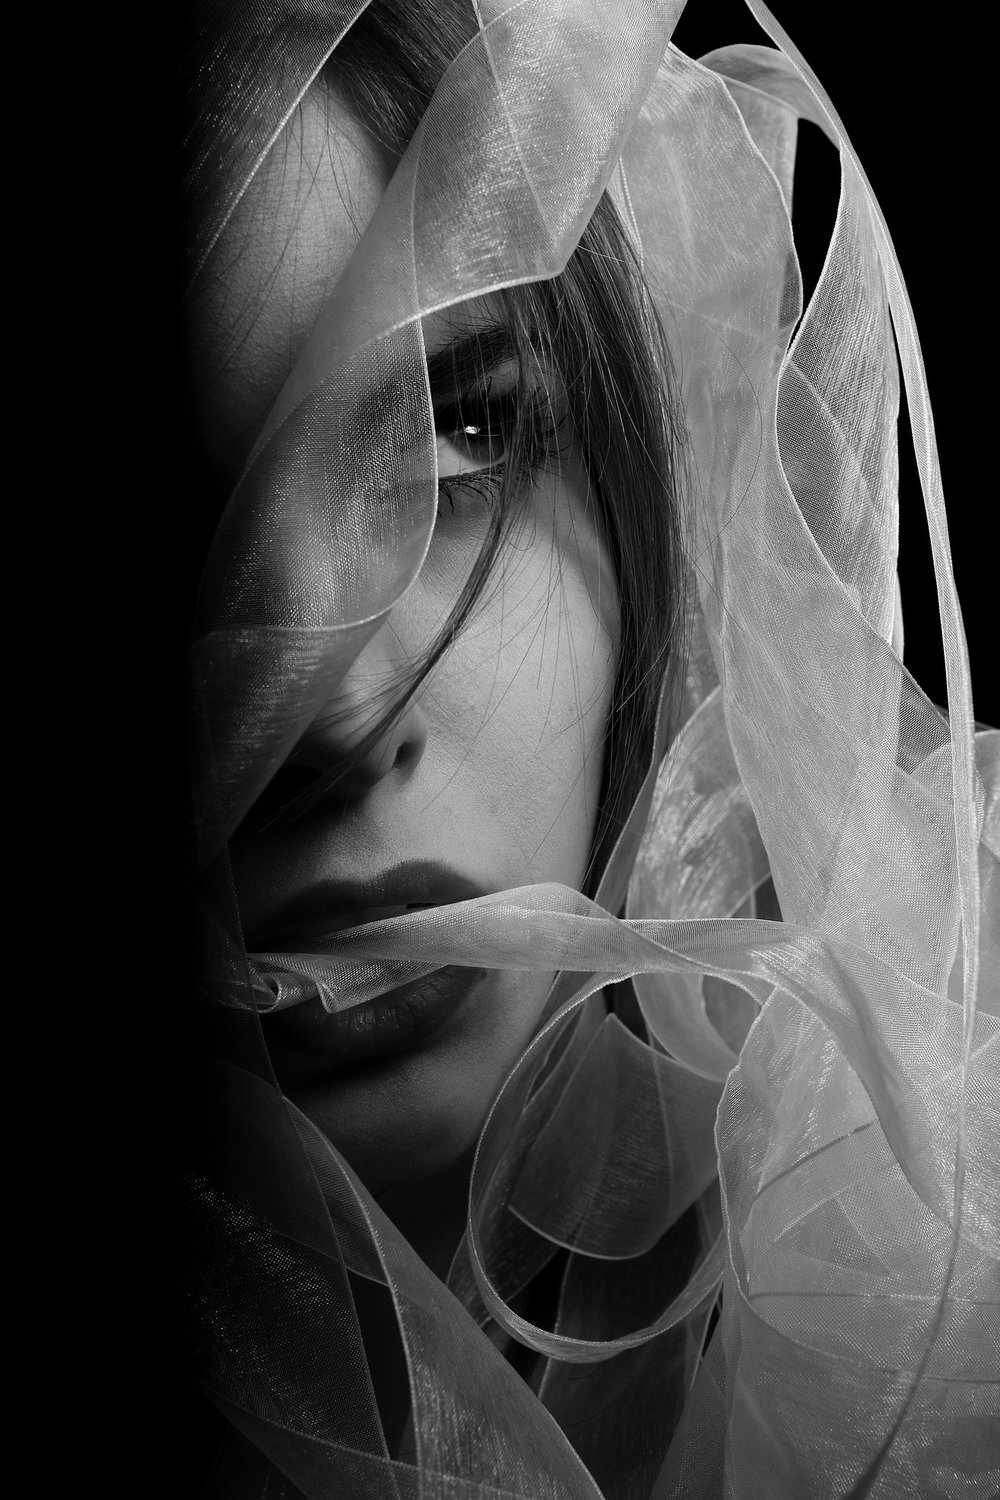 Black and white portraits rely on contrast, but don't overdo it.